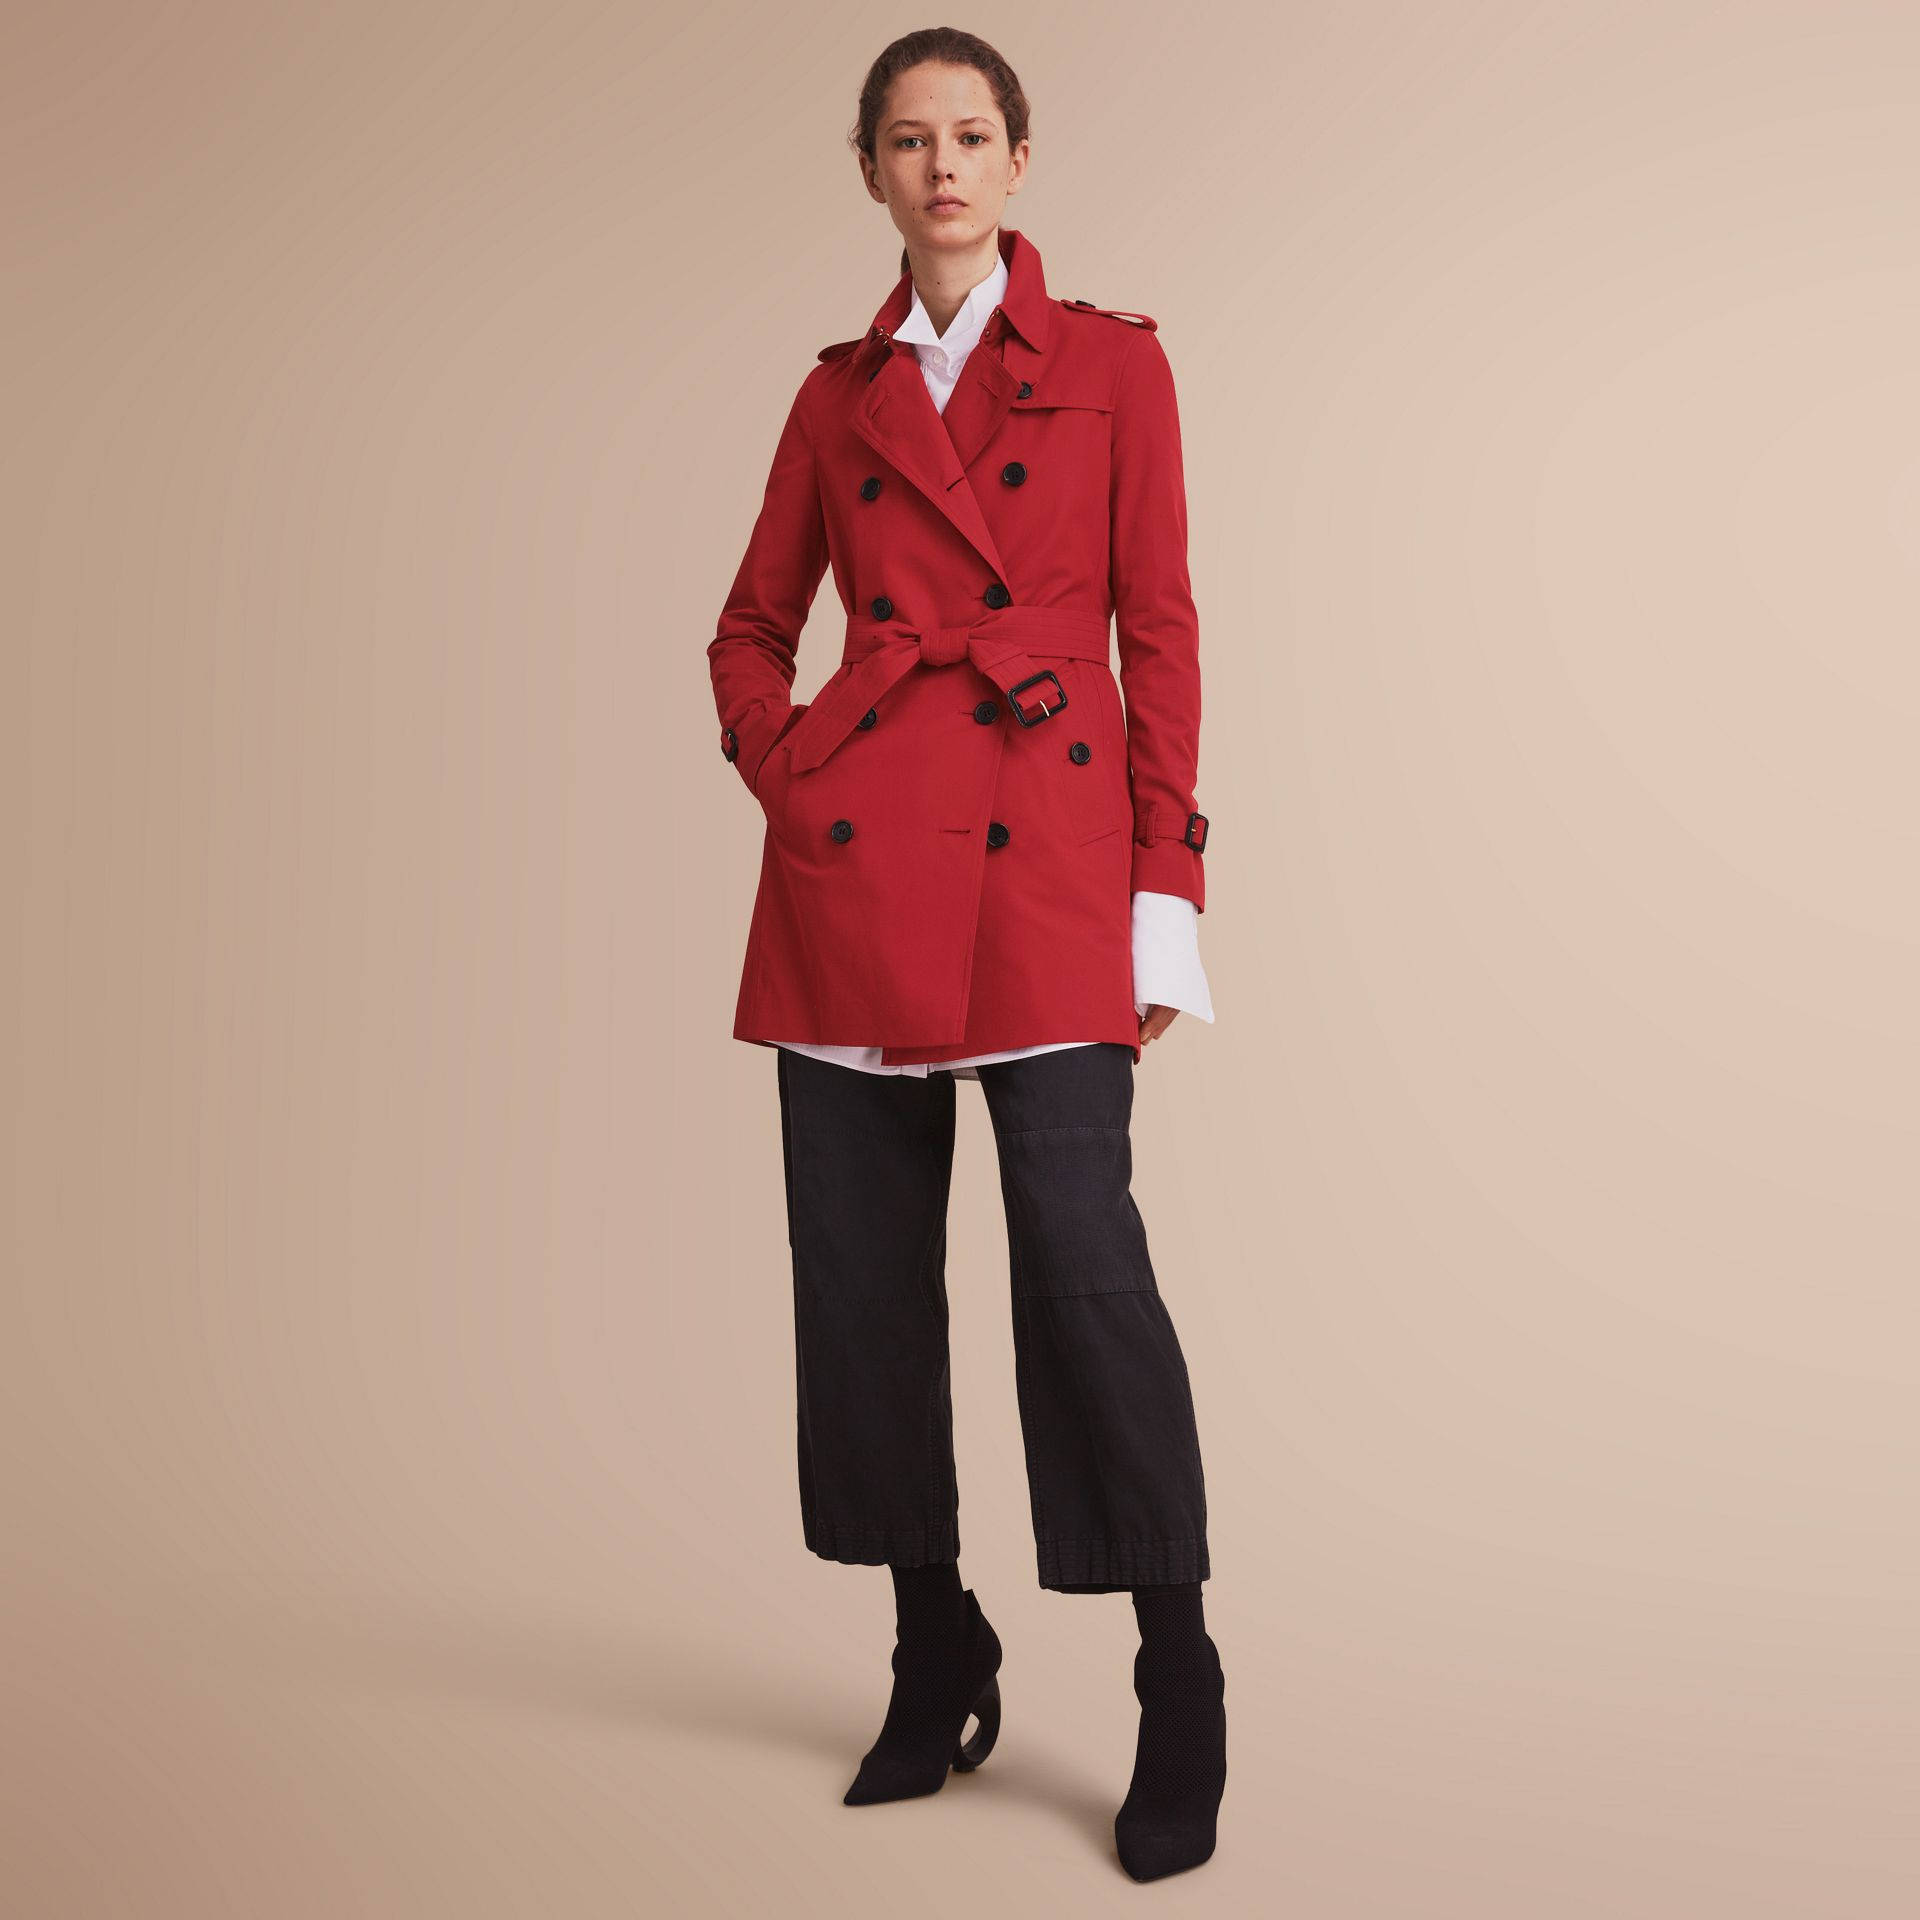 The Kensington – Mid-Length Heritage Trench Coat in Parade Red - Women | Burberry - gallery image 1